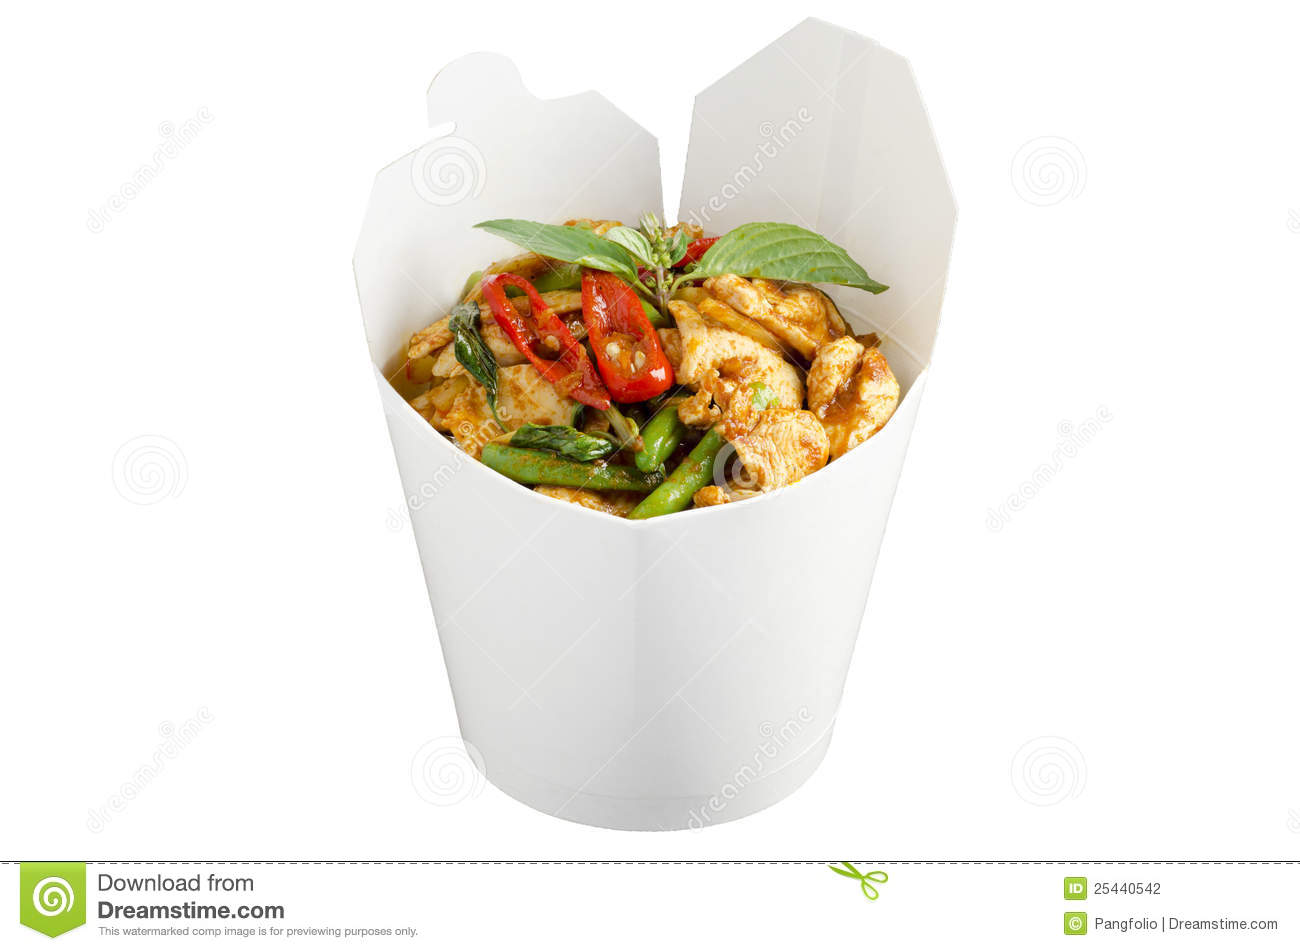 7c9248a7 Chicken red curry to go stock photo. Image of cuisine - 25440542